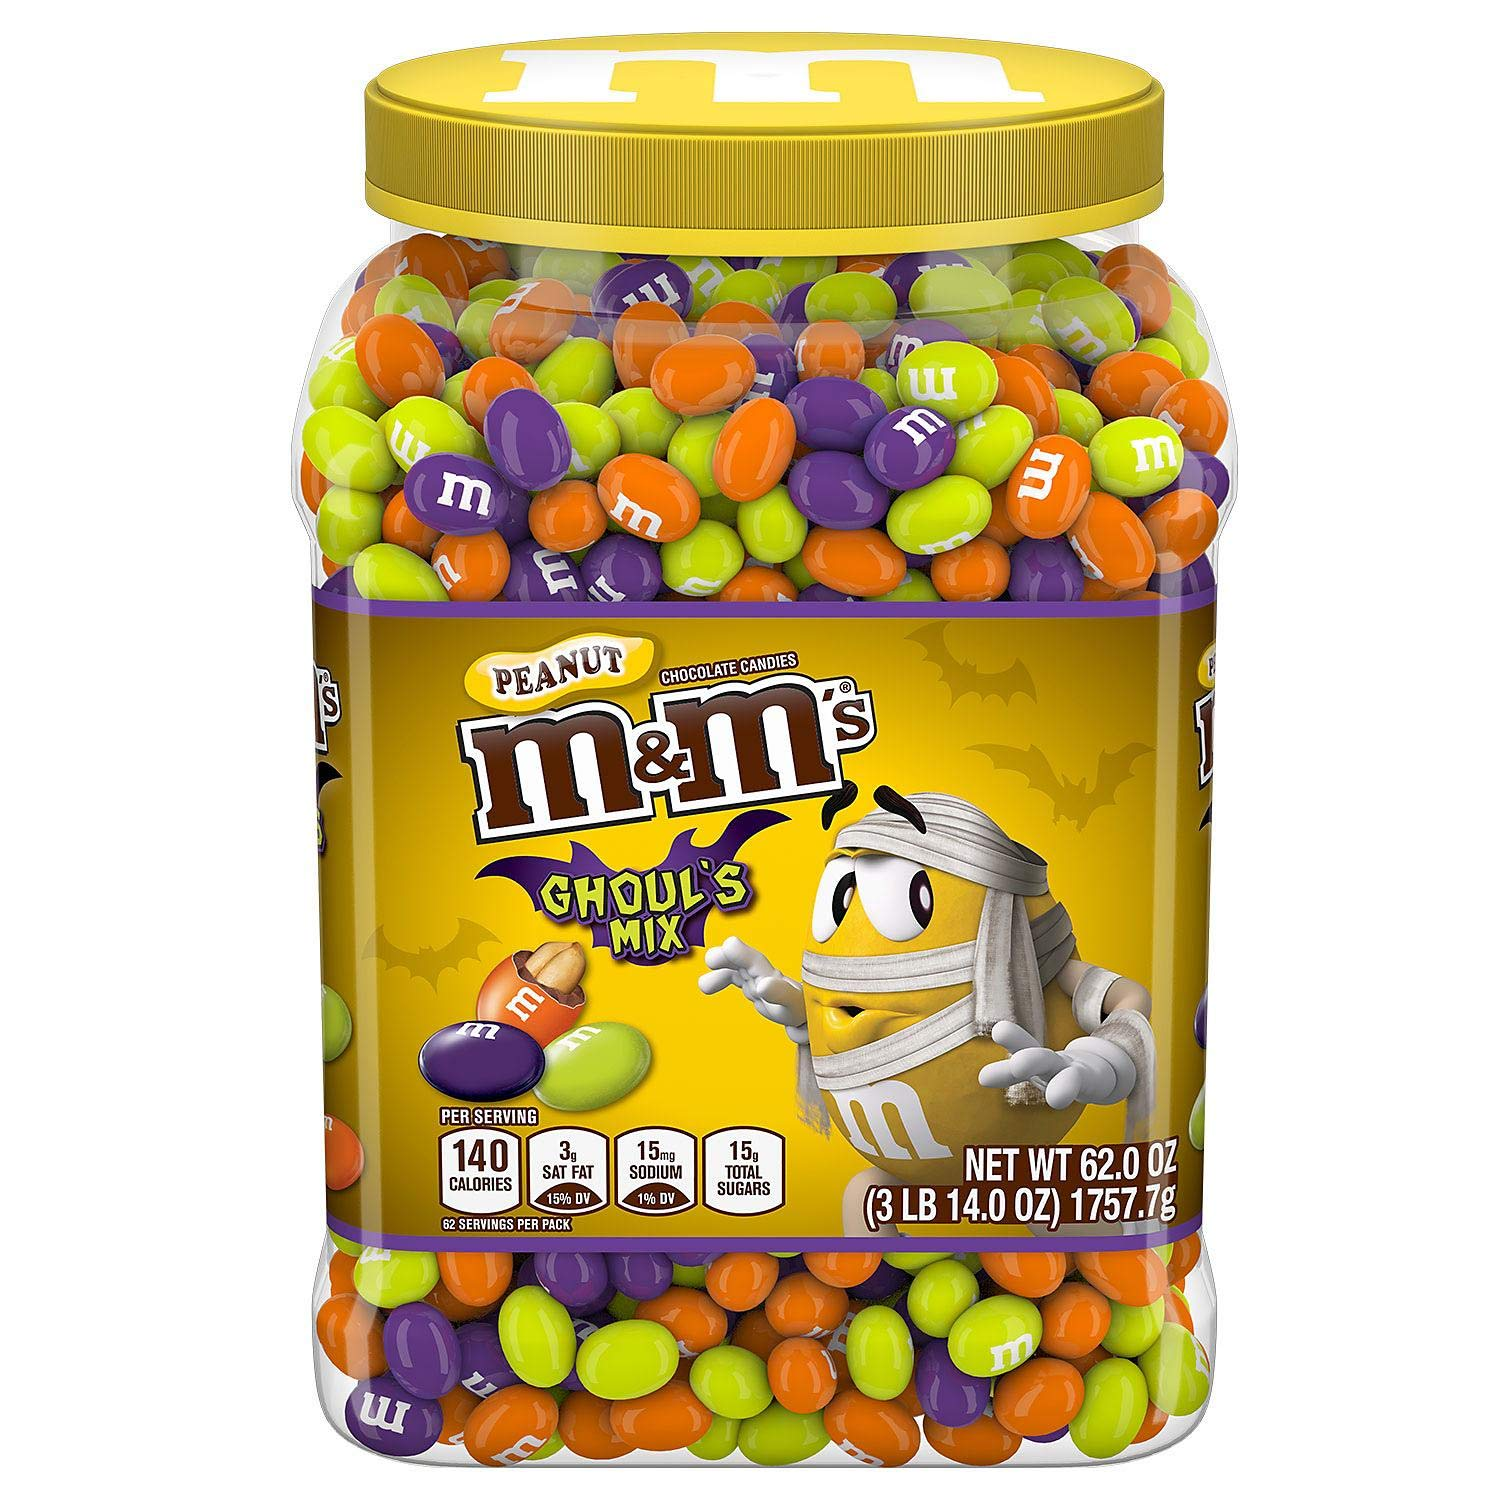 M&M'S Ghoul's Mix Peanut Chocolate Halloween Candy by M&M'S